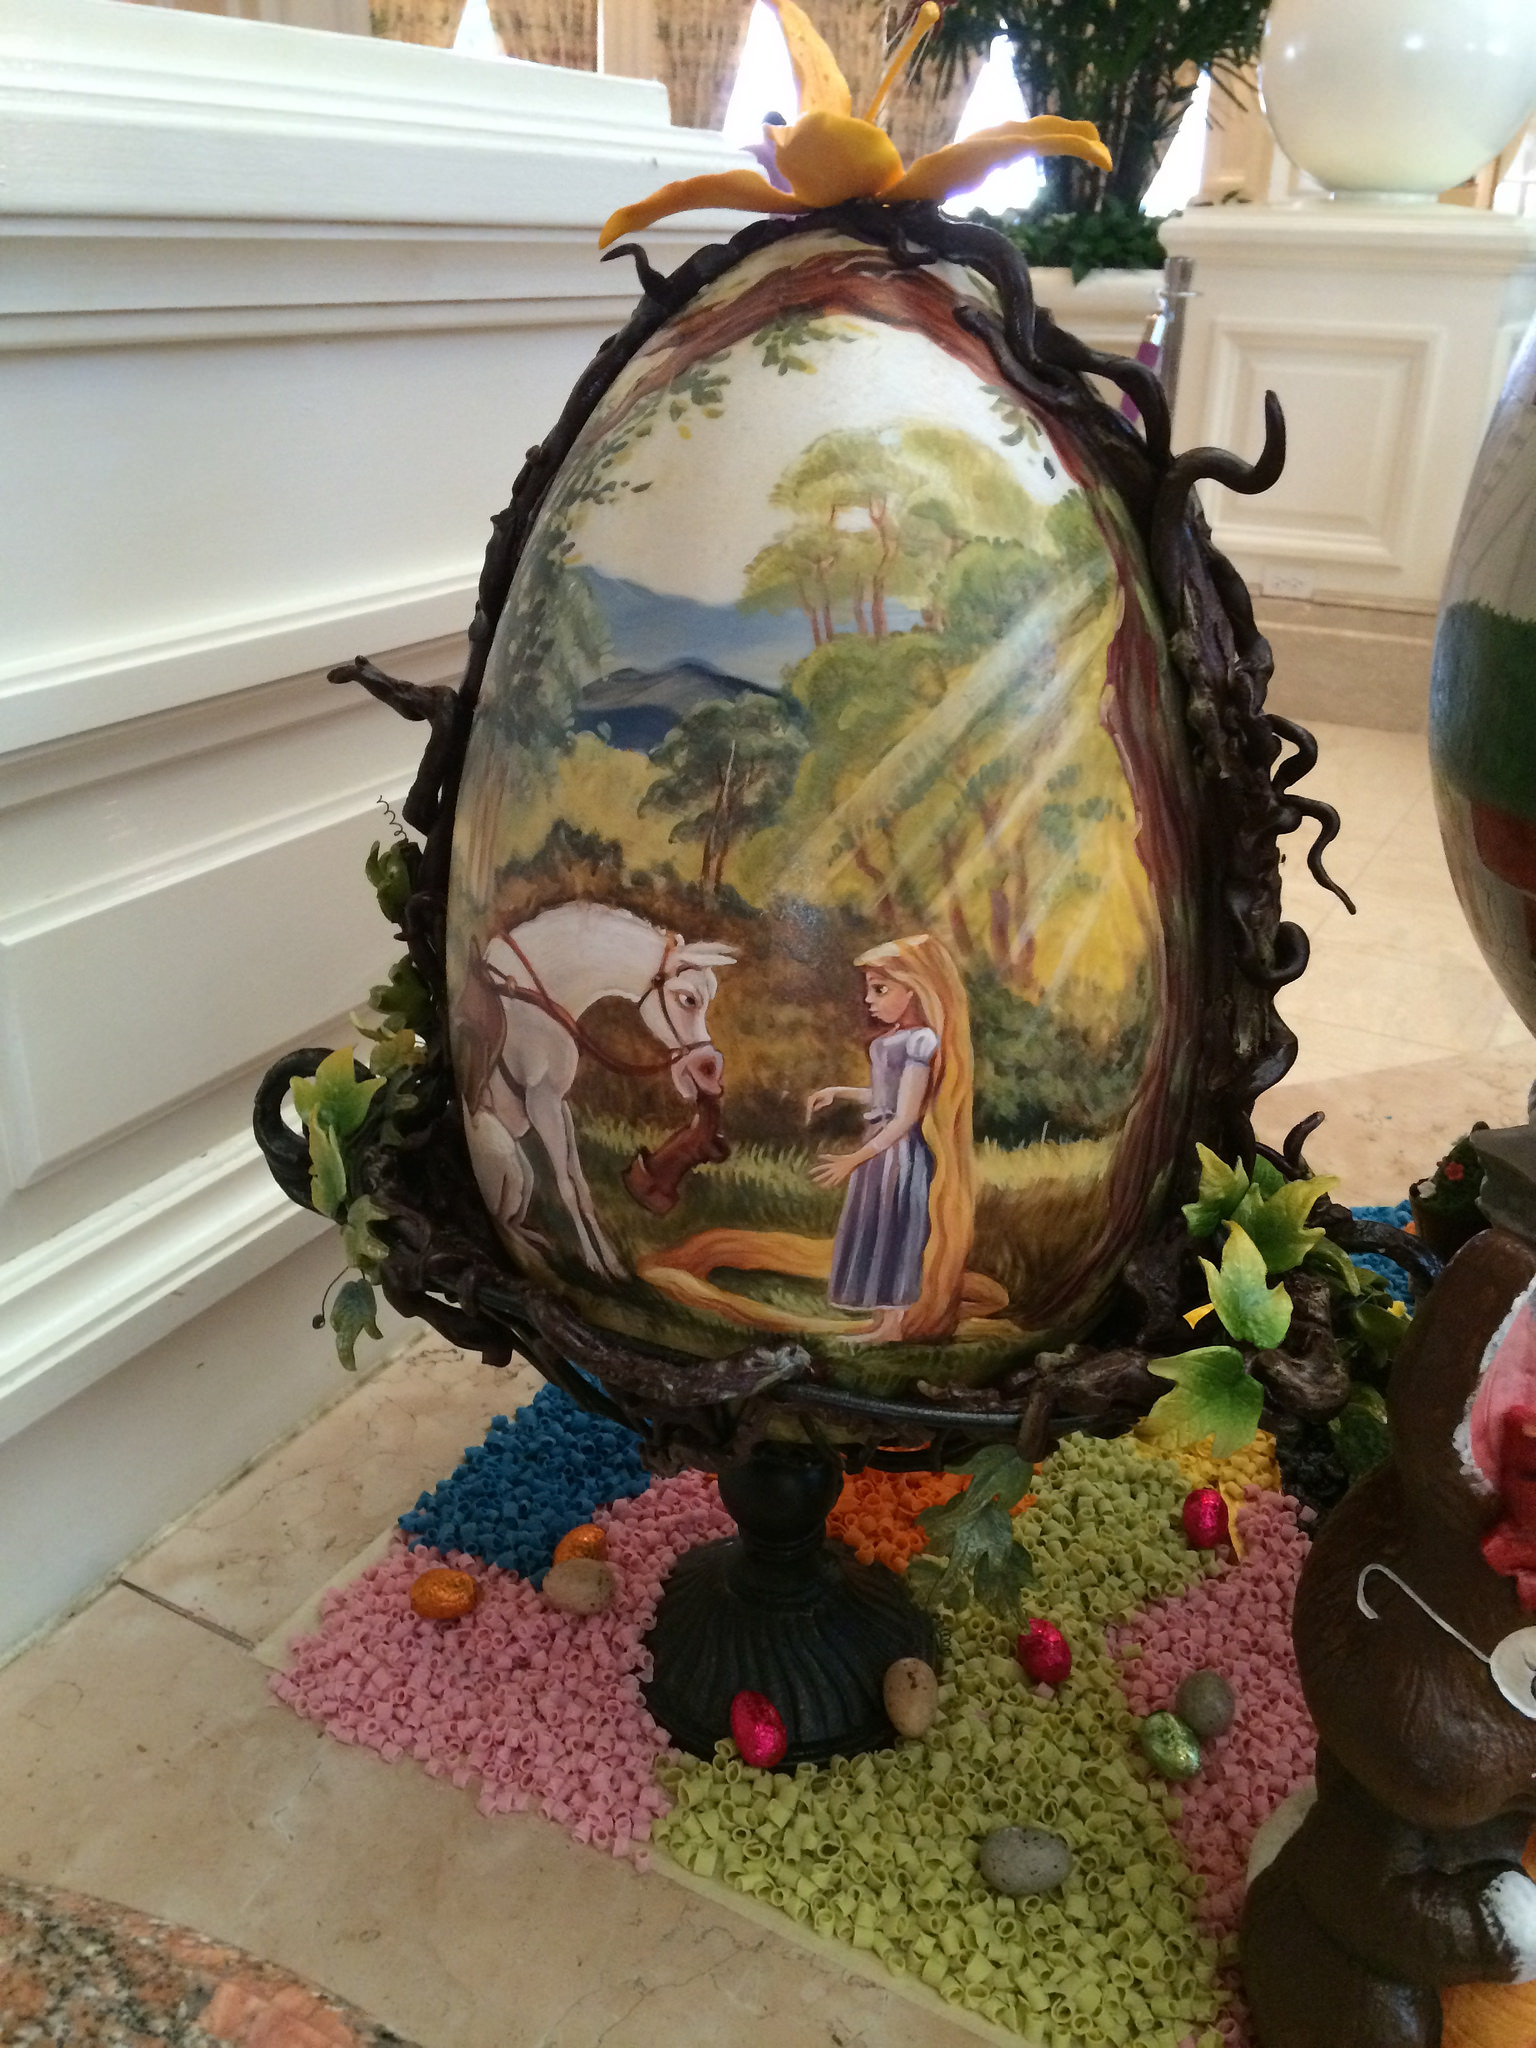 Disney's Grand Floridian Resort Easter Eggs Display 2015